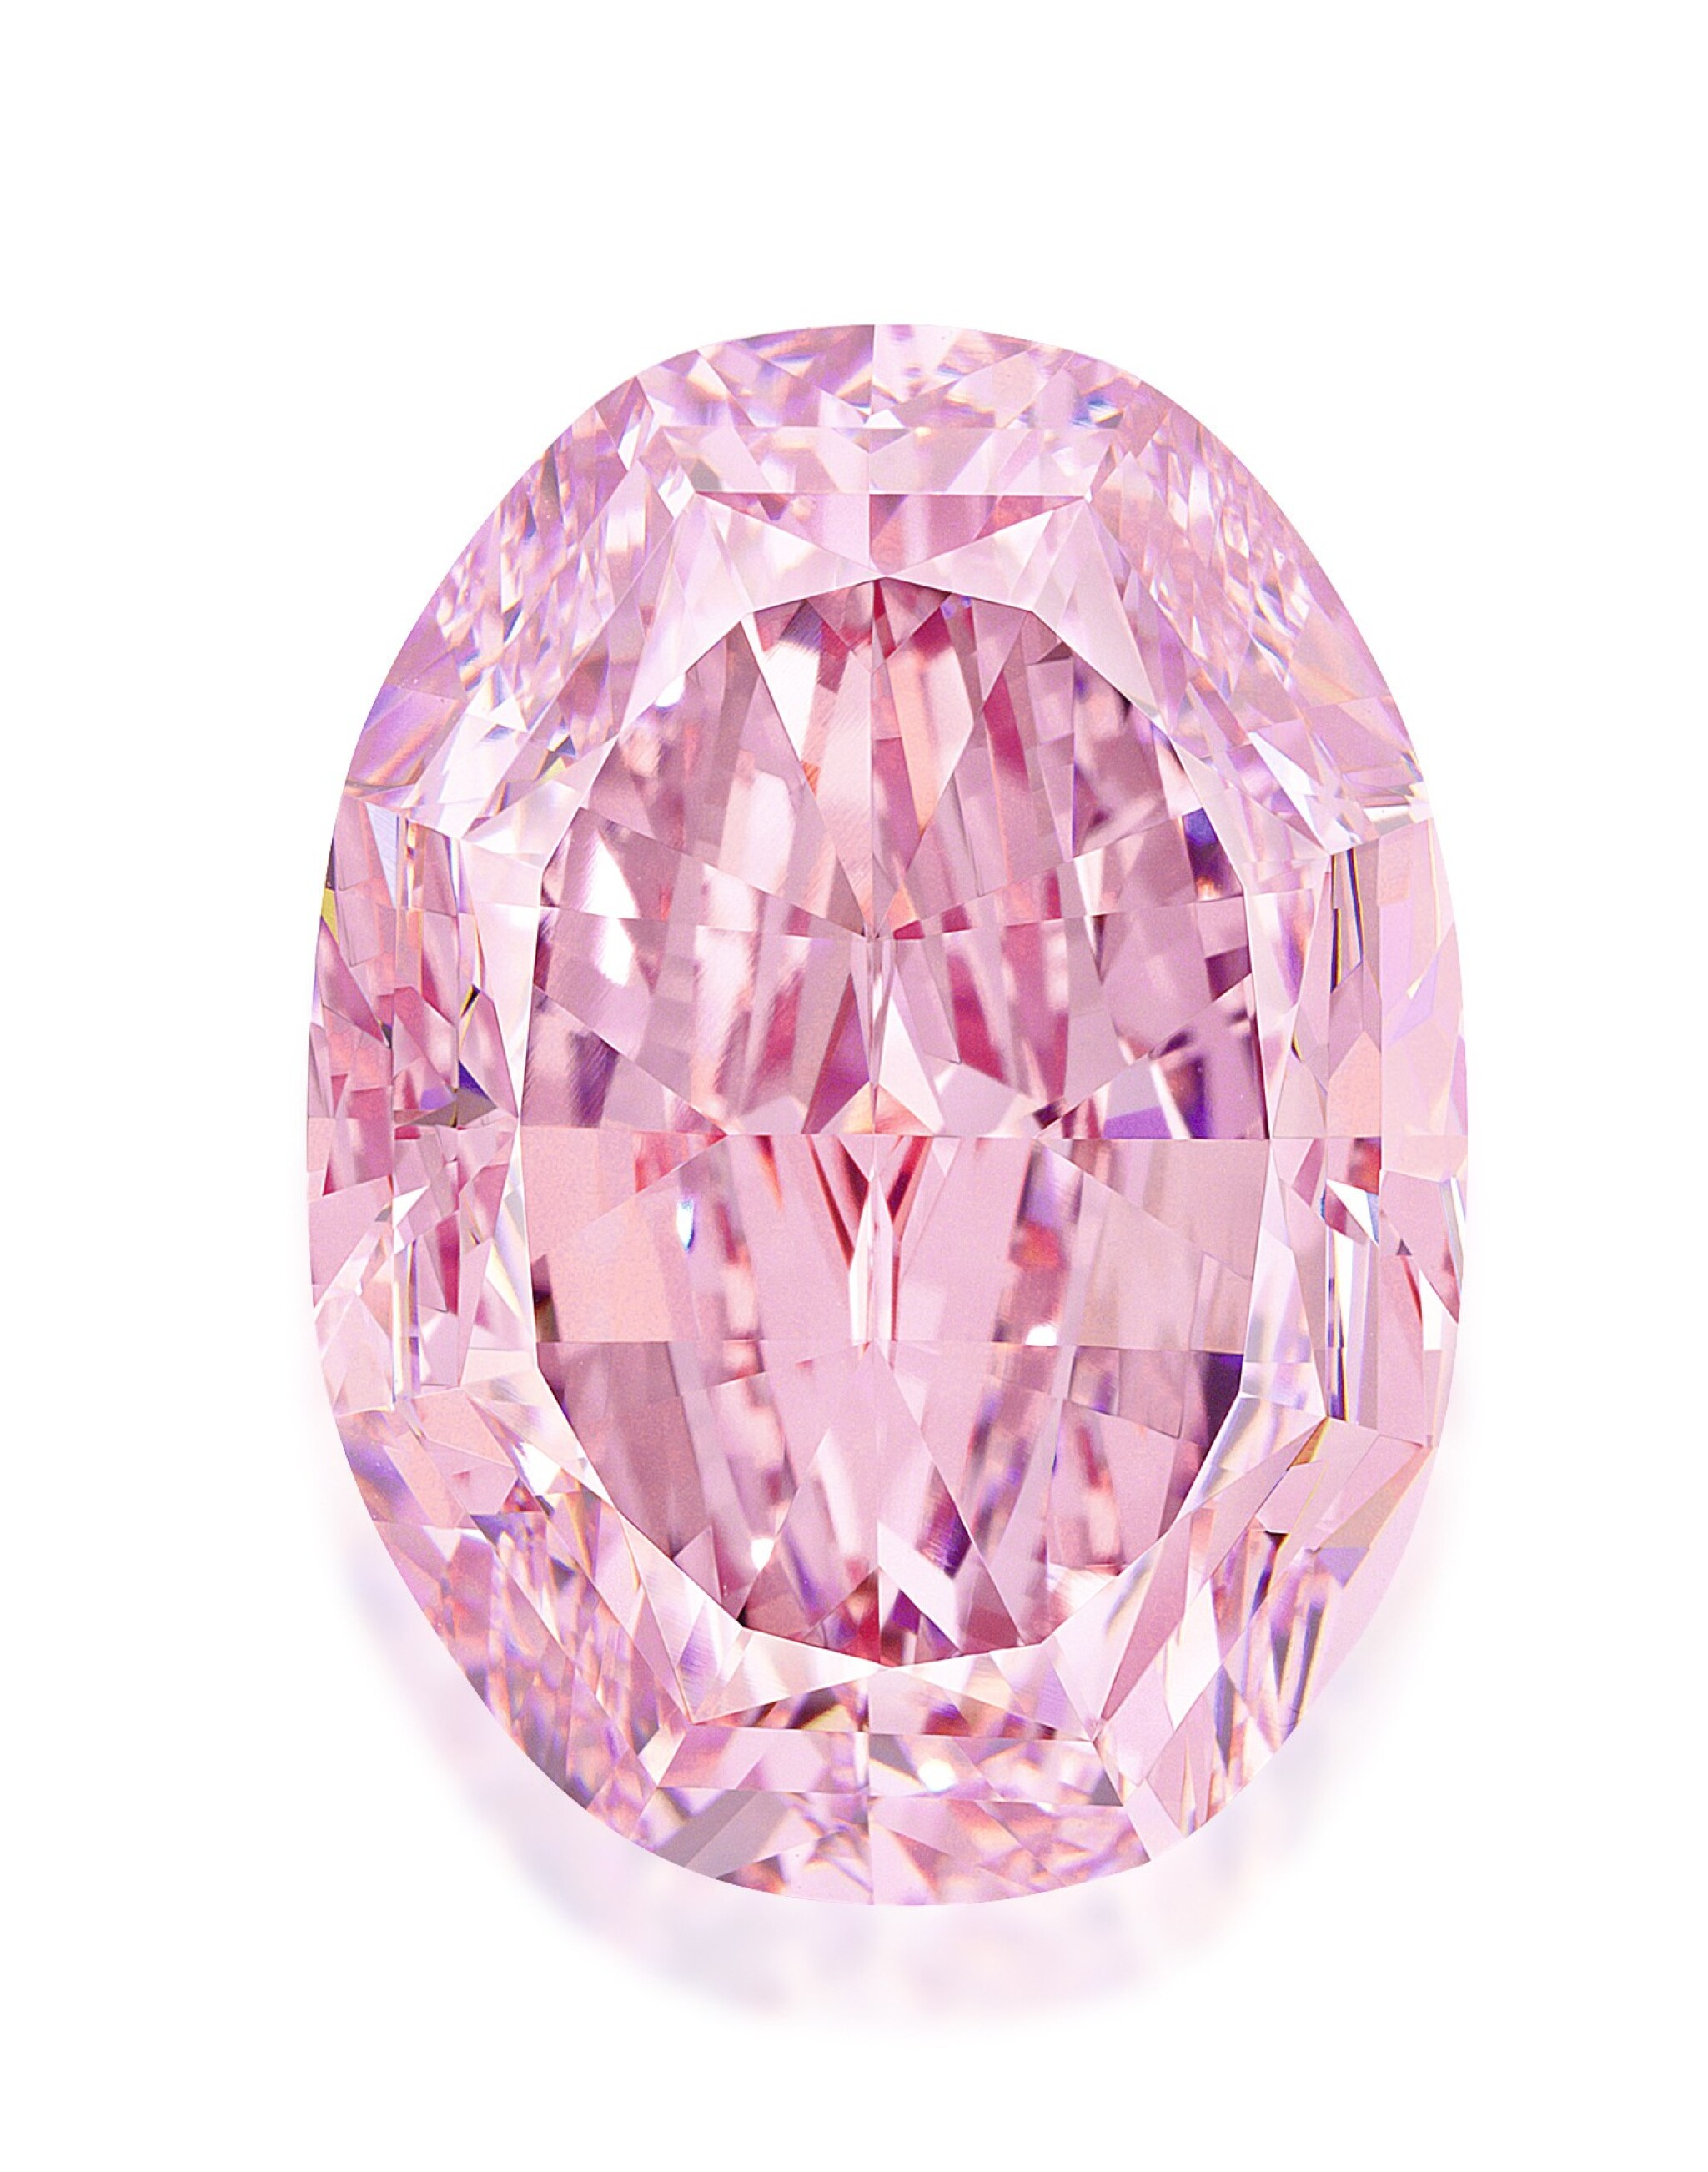 View 1 of Lot 204. SUPERB AND MAGNIFICENT FANCY VIVID PURPLE-PINK DIAMOND.